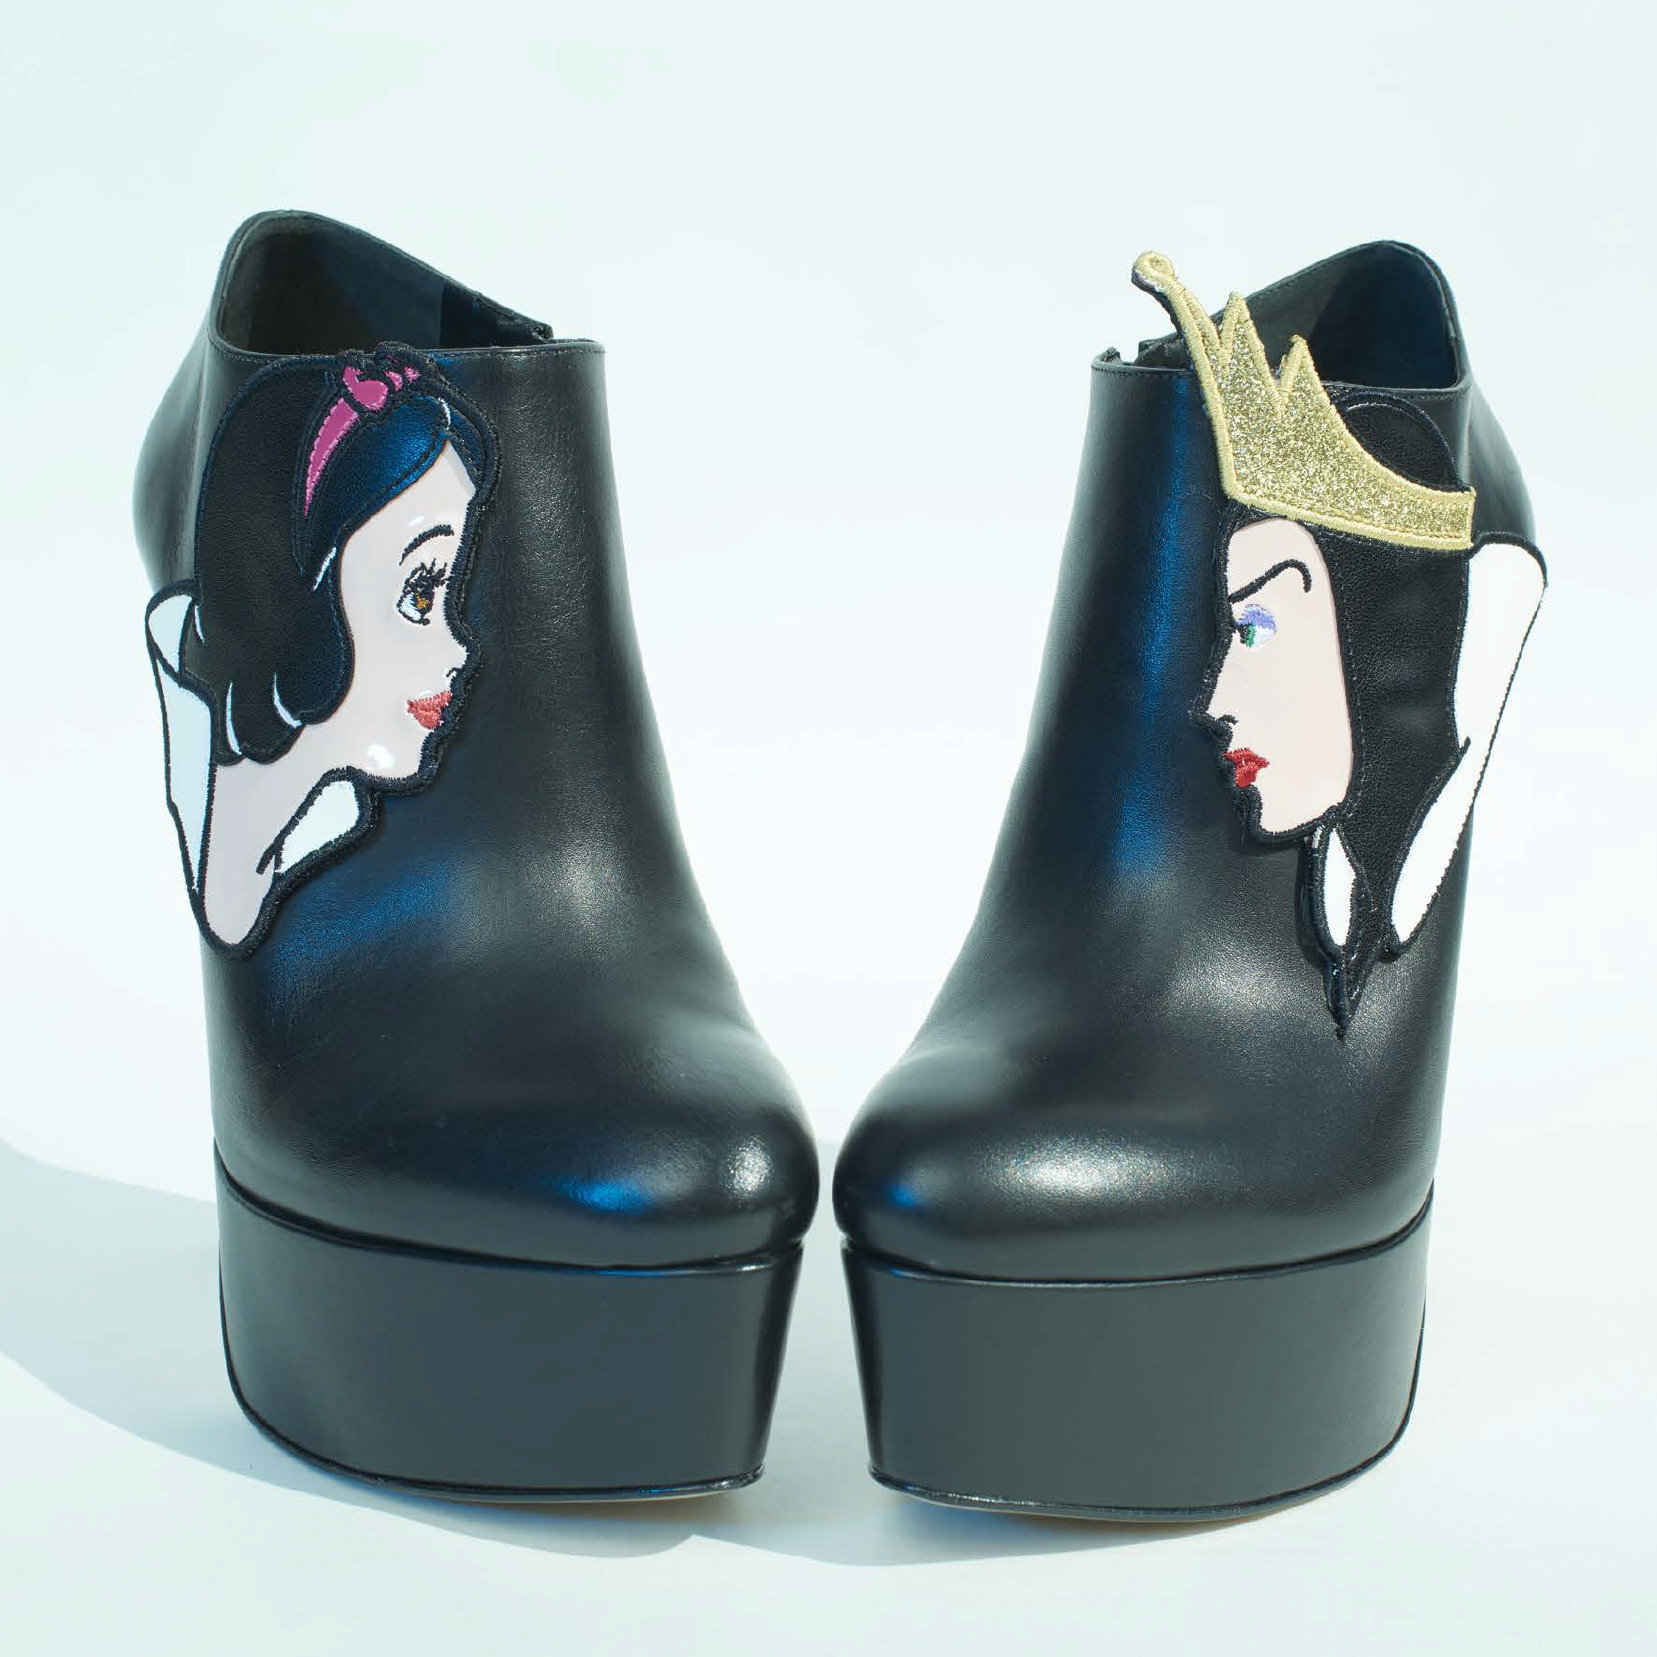 Good Vs. Evil - Disney X Ruthie Davis RDSW1804